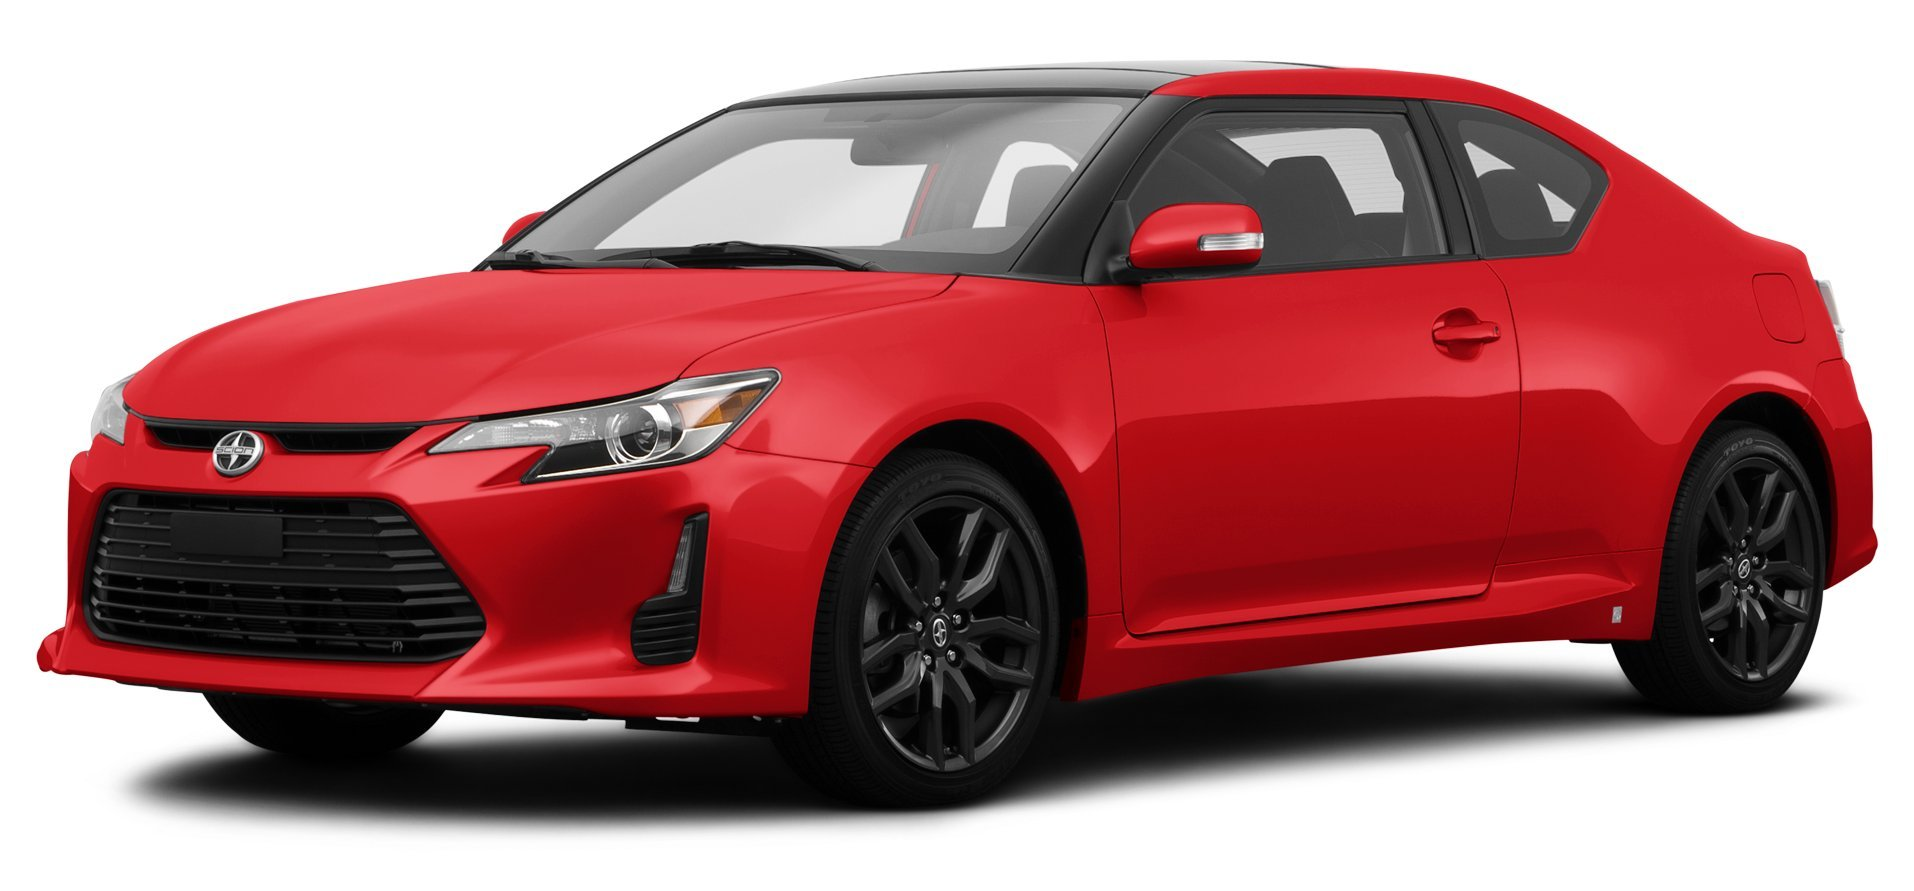 713Rn%2B764dL amazon com 2014 scion tc reviews, images, and specs vehicles 2014 Scion tC Radio Rear at webbmarketing.co